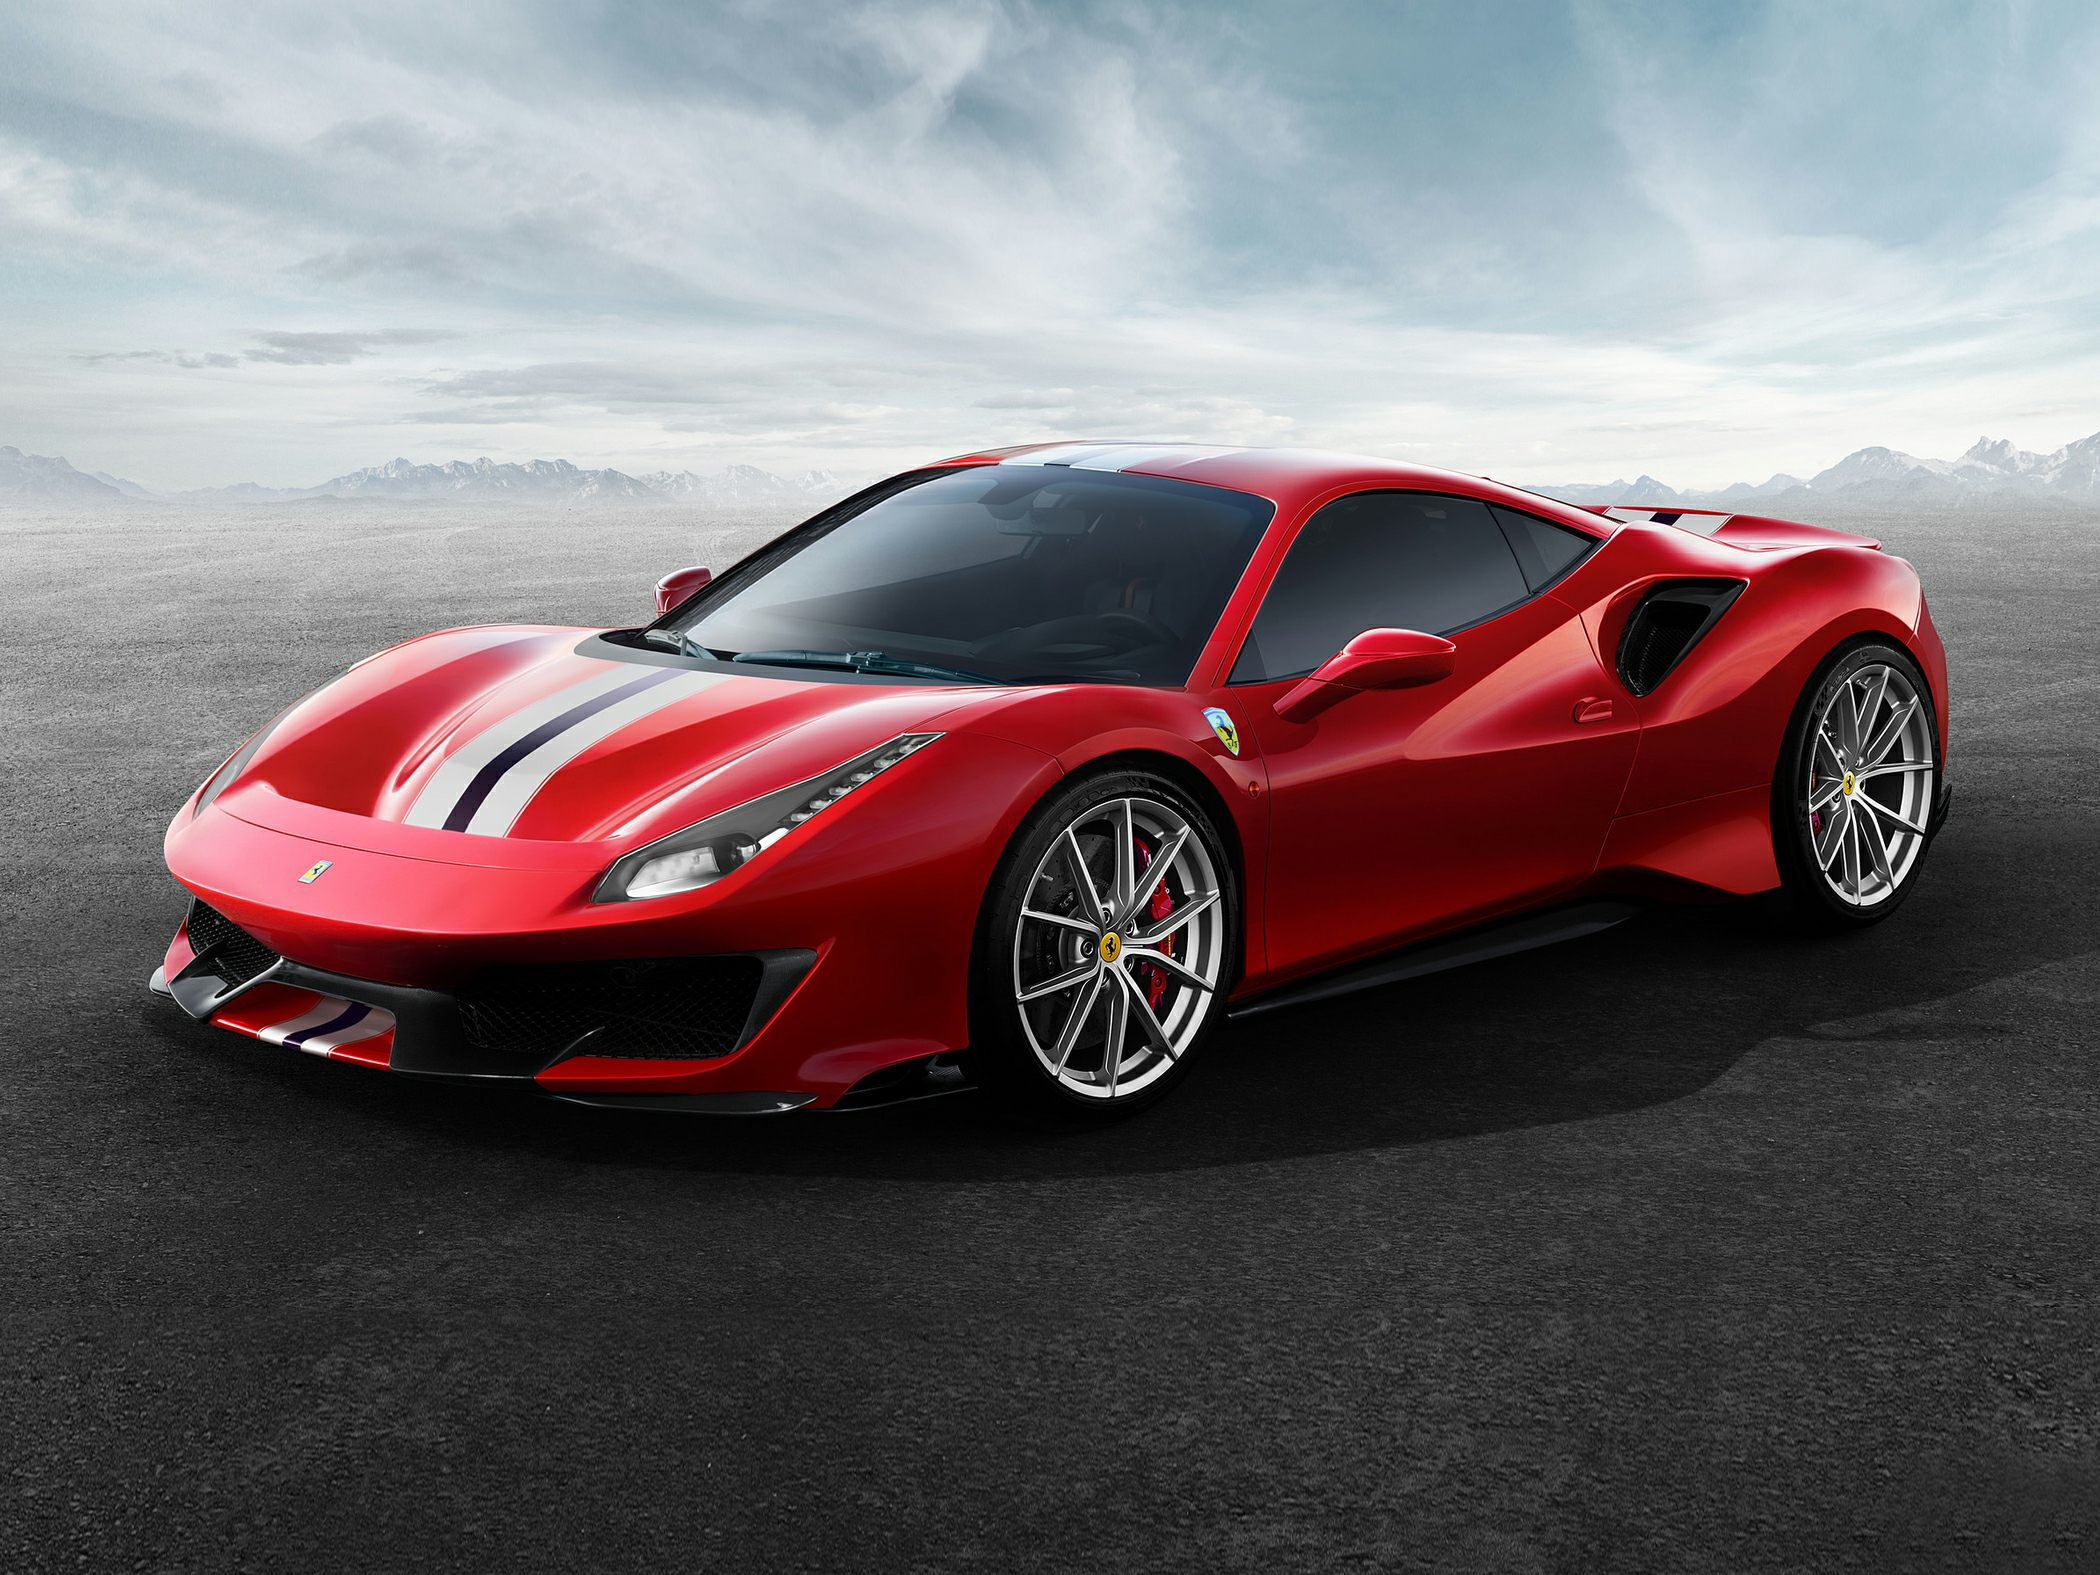 2019 Ferrari 488 Pista Base 2dr Coupe Specs And Prices